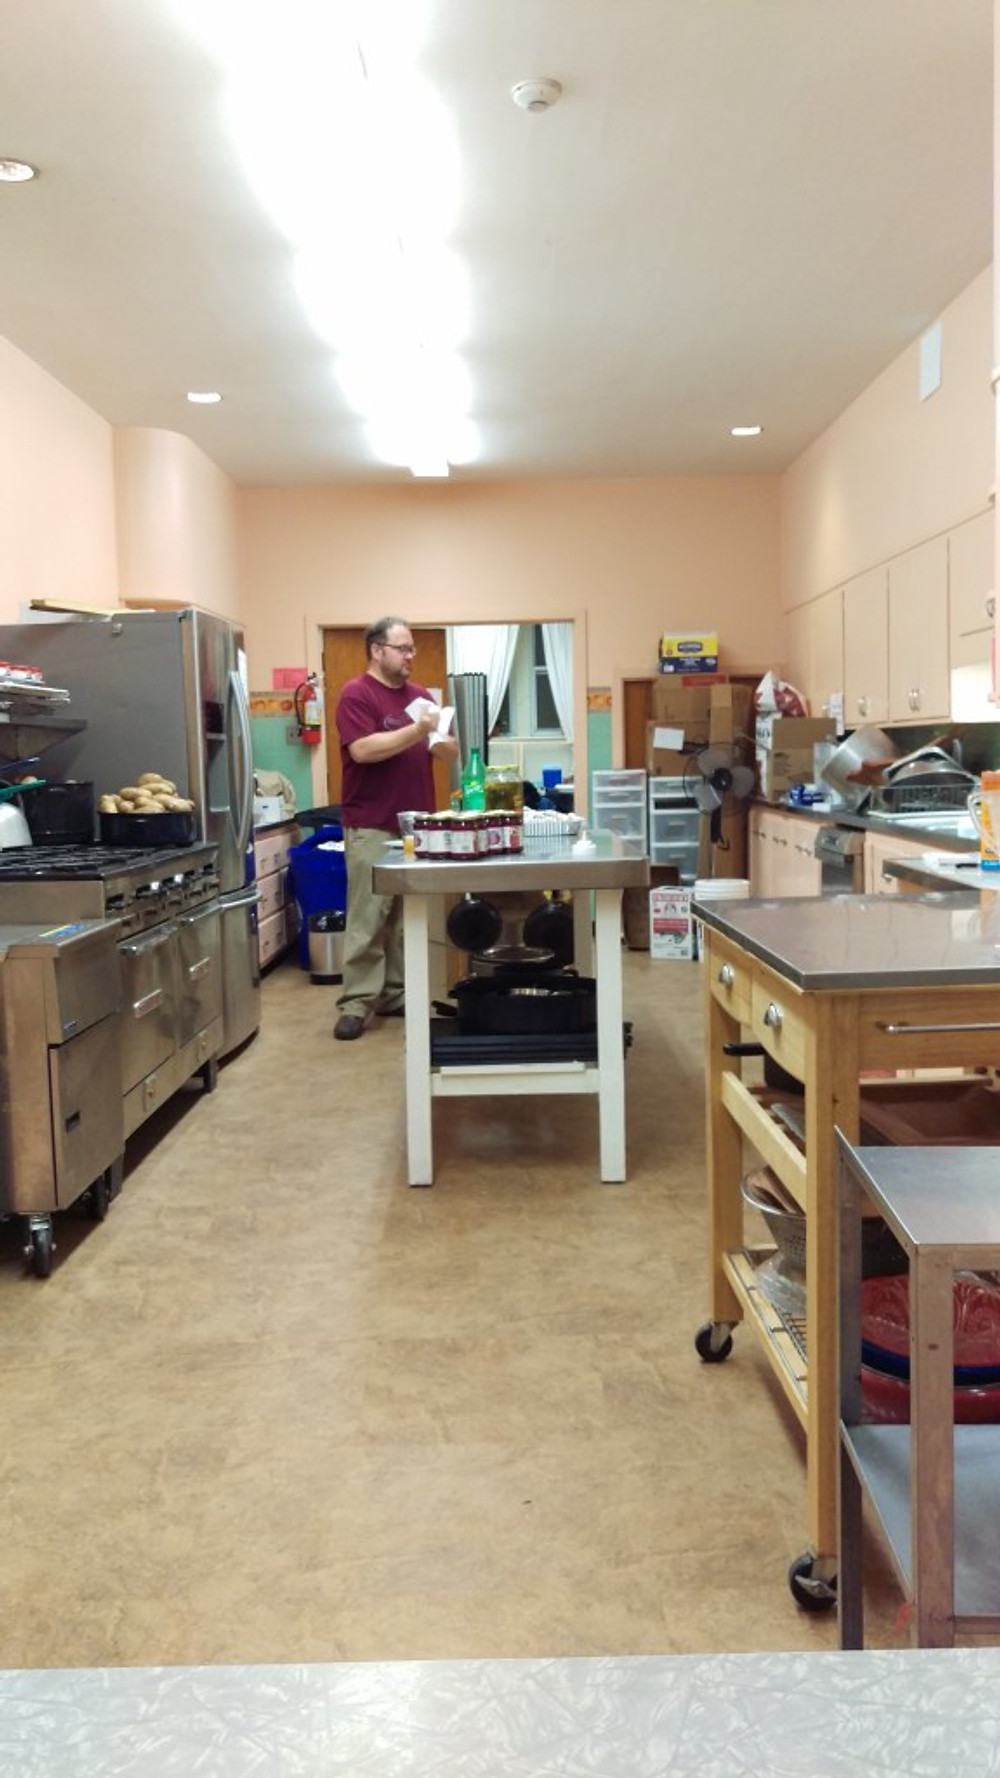 A picture of the church kitchen and my husband prepping food.